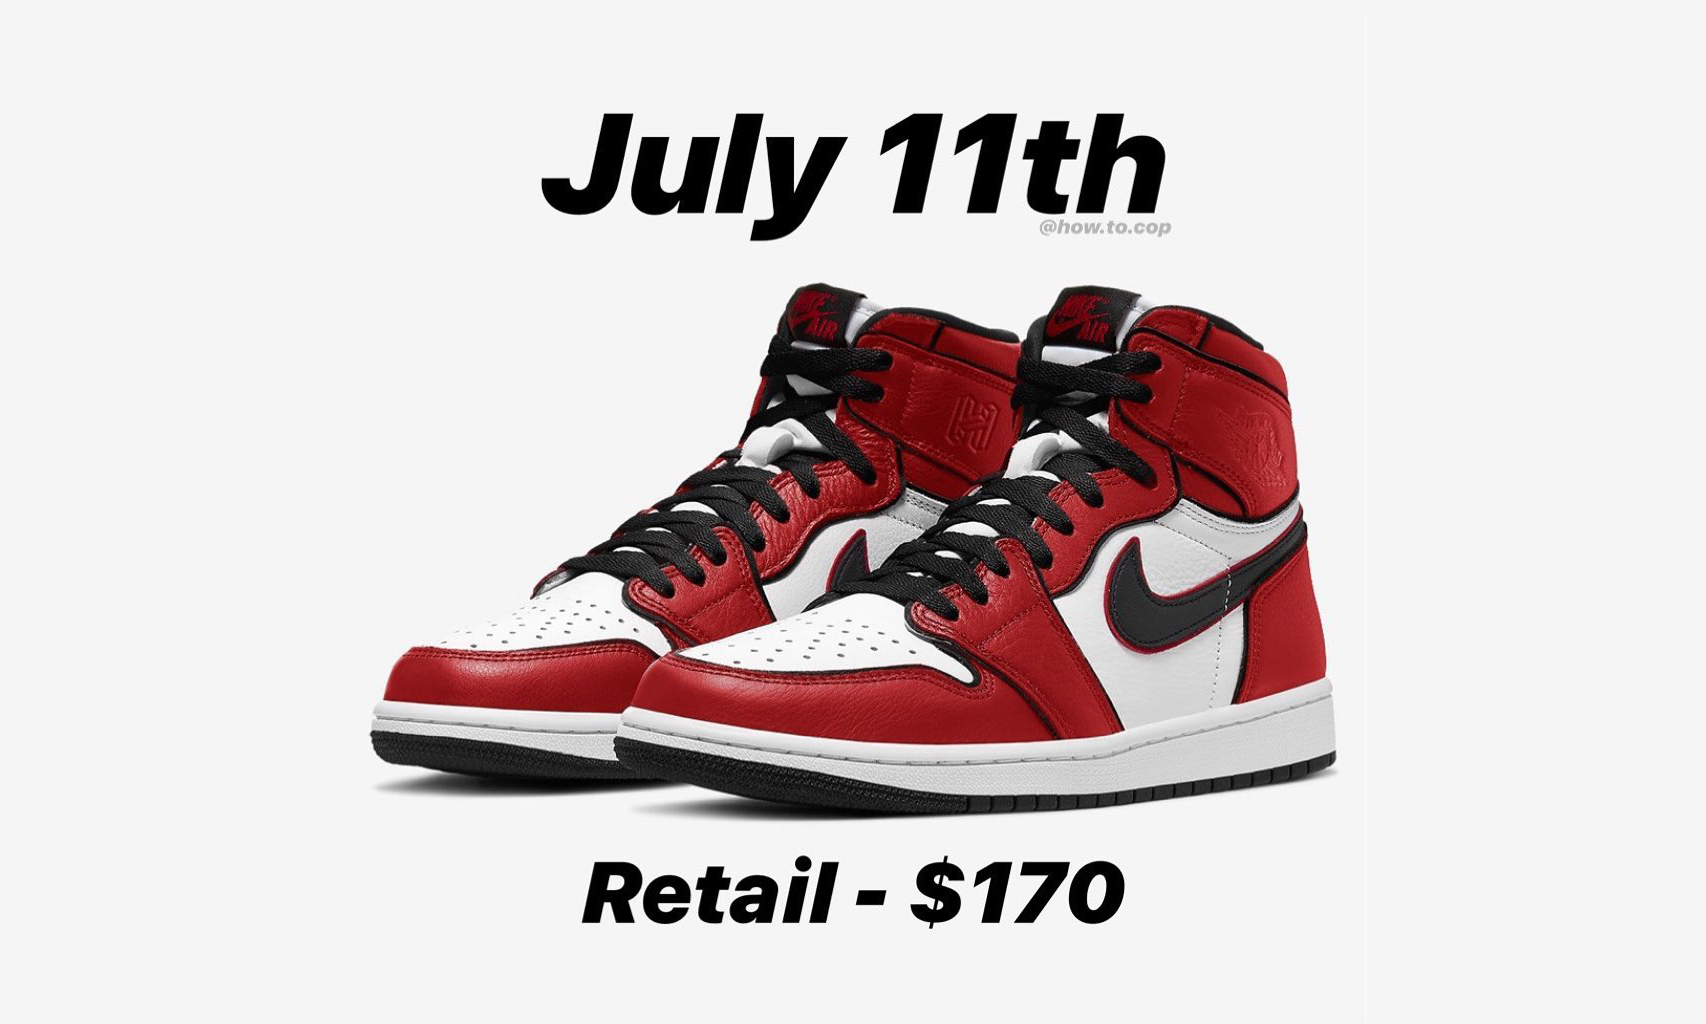 Air Jordan I Retro High「Bloodline」2.0 定档 7 月